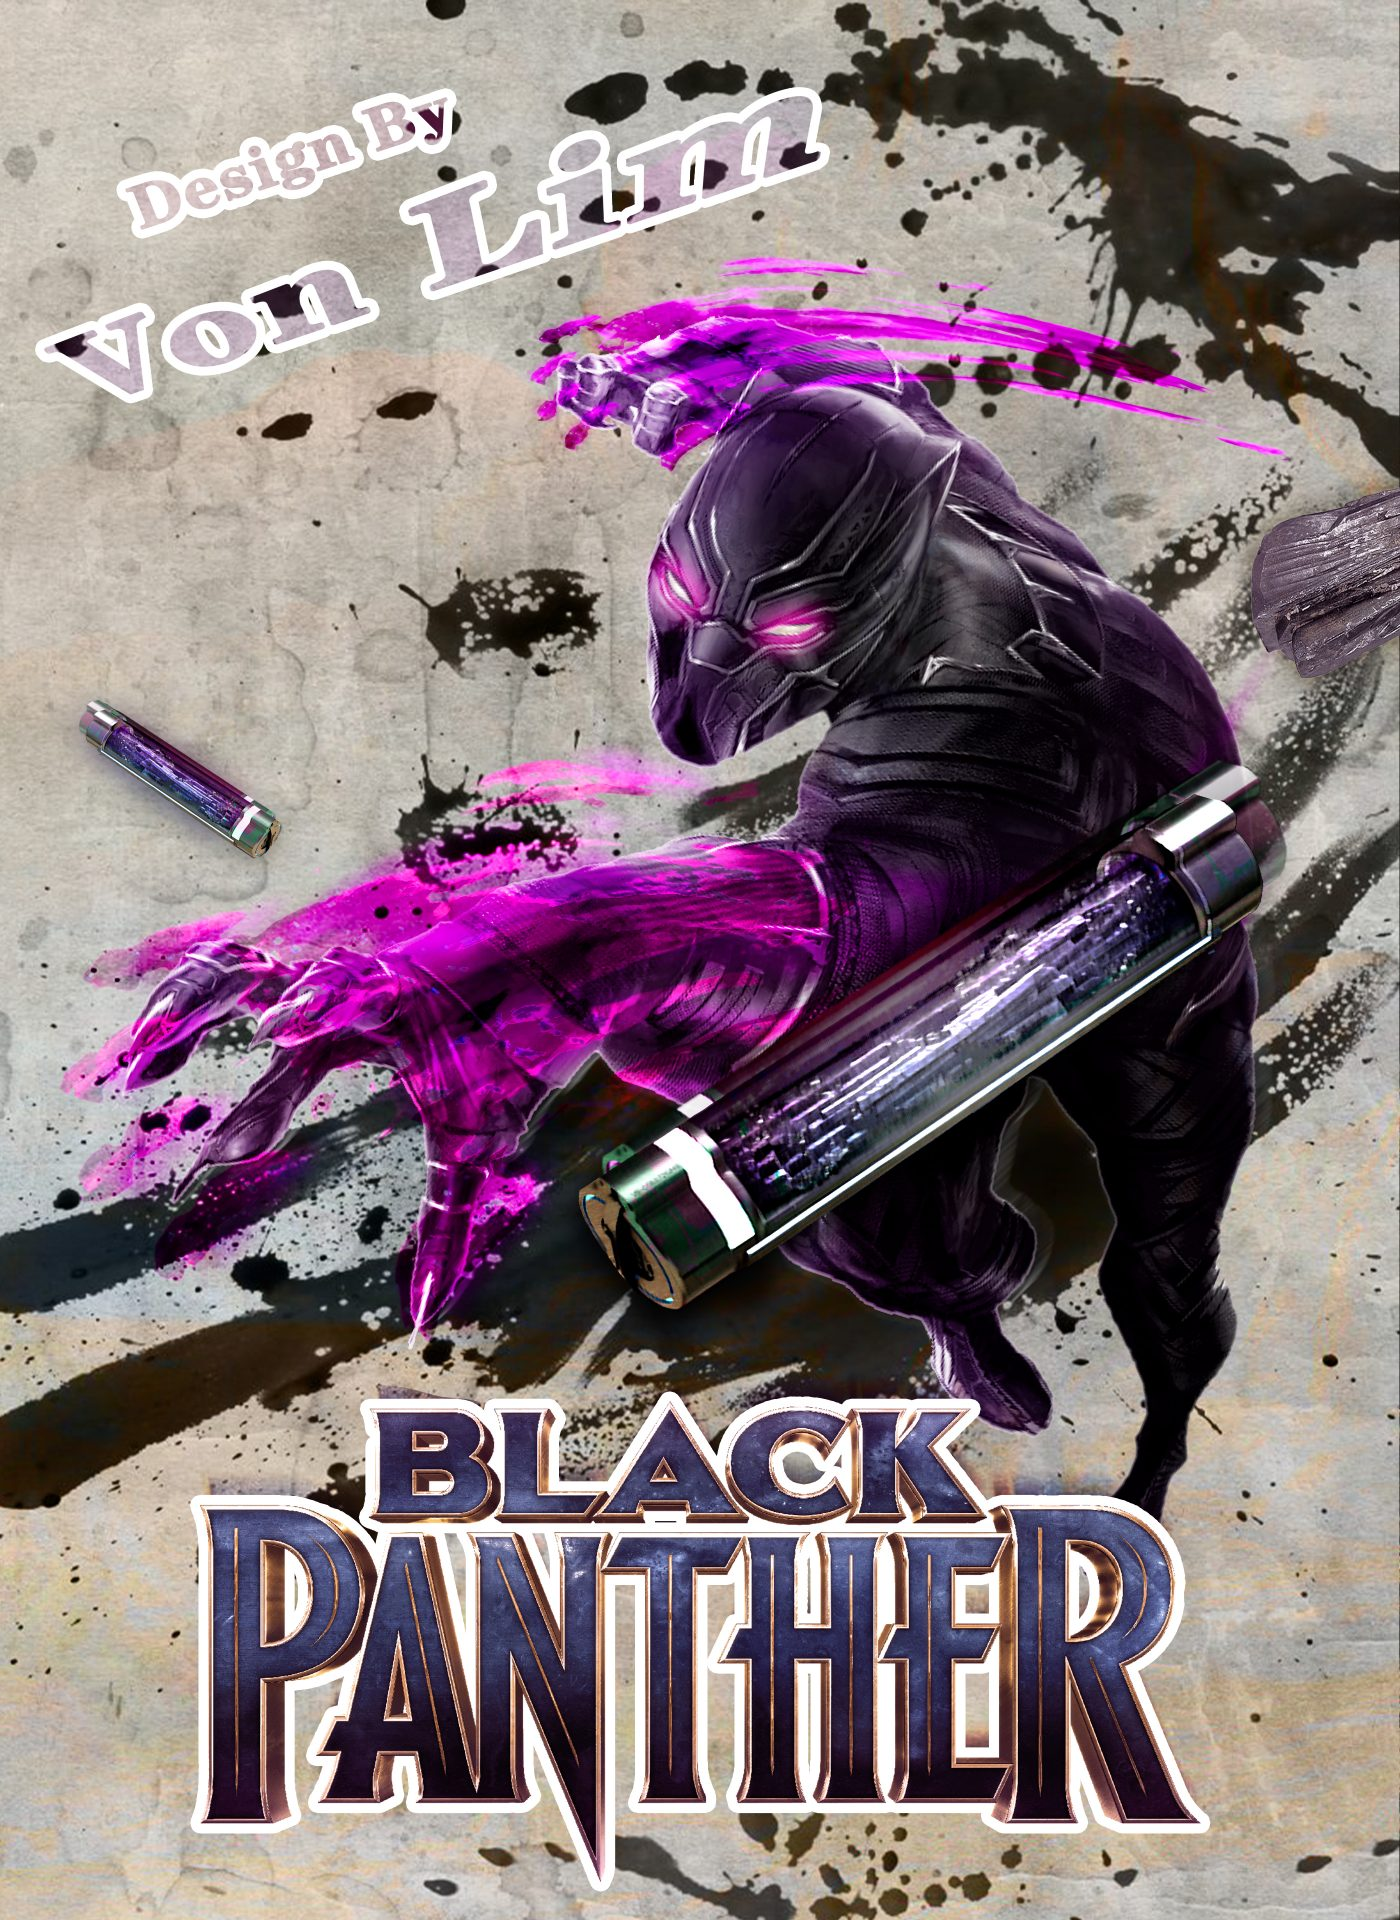 Black-Panther-Vps-Artwork-VonLim-VonProduction-MyVpsGroup